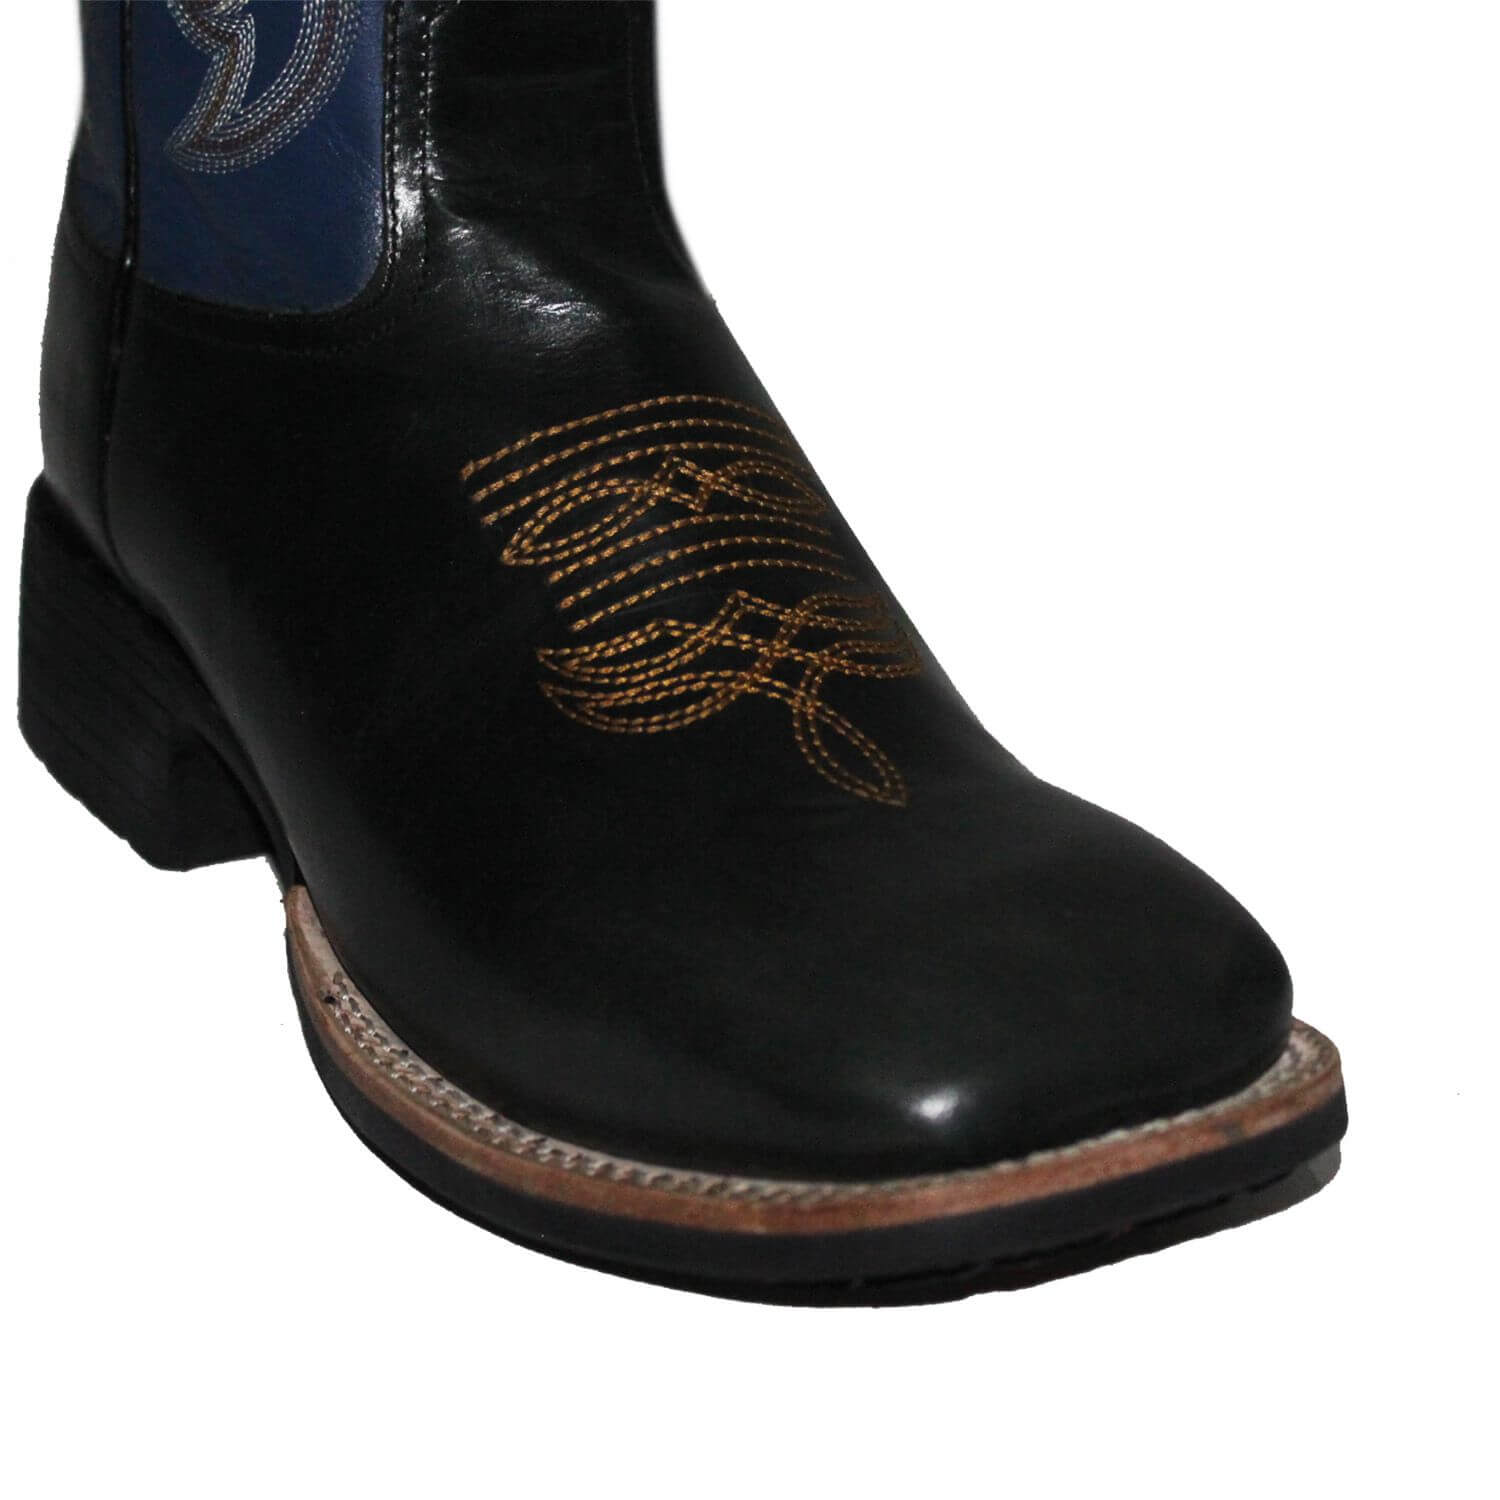 Bota Masculina Pull Up Preto Royal Brazil Country